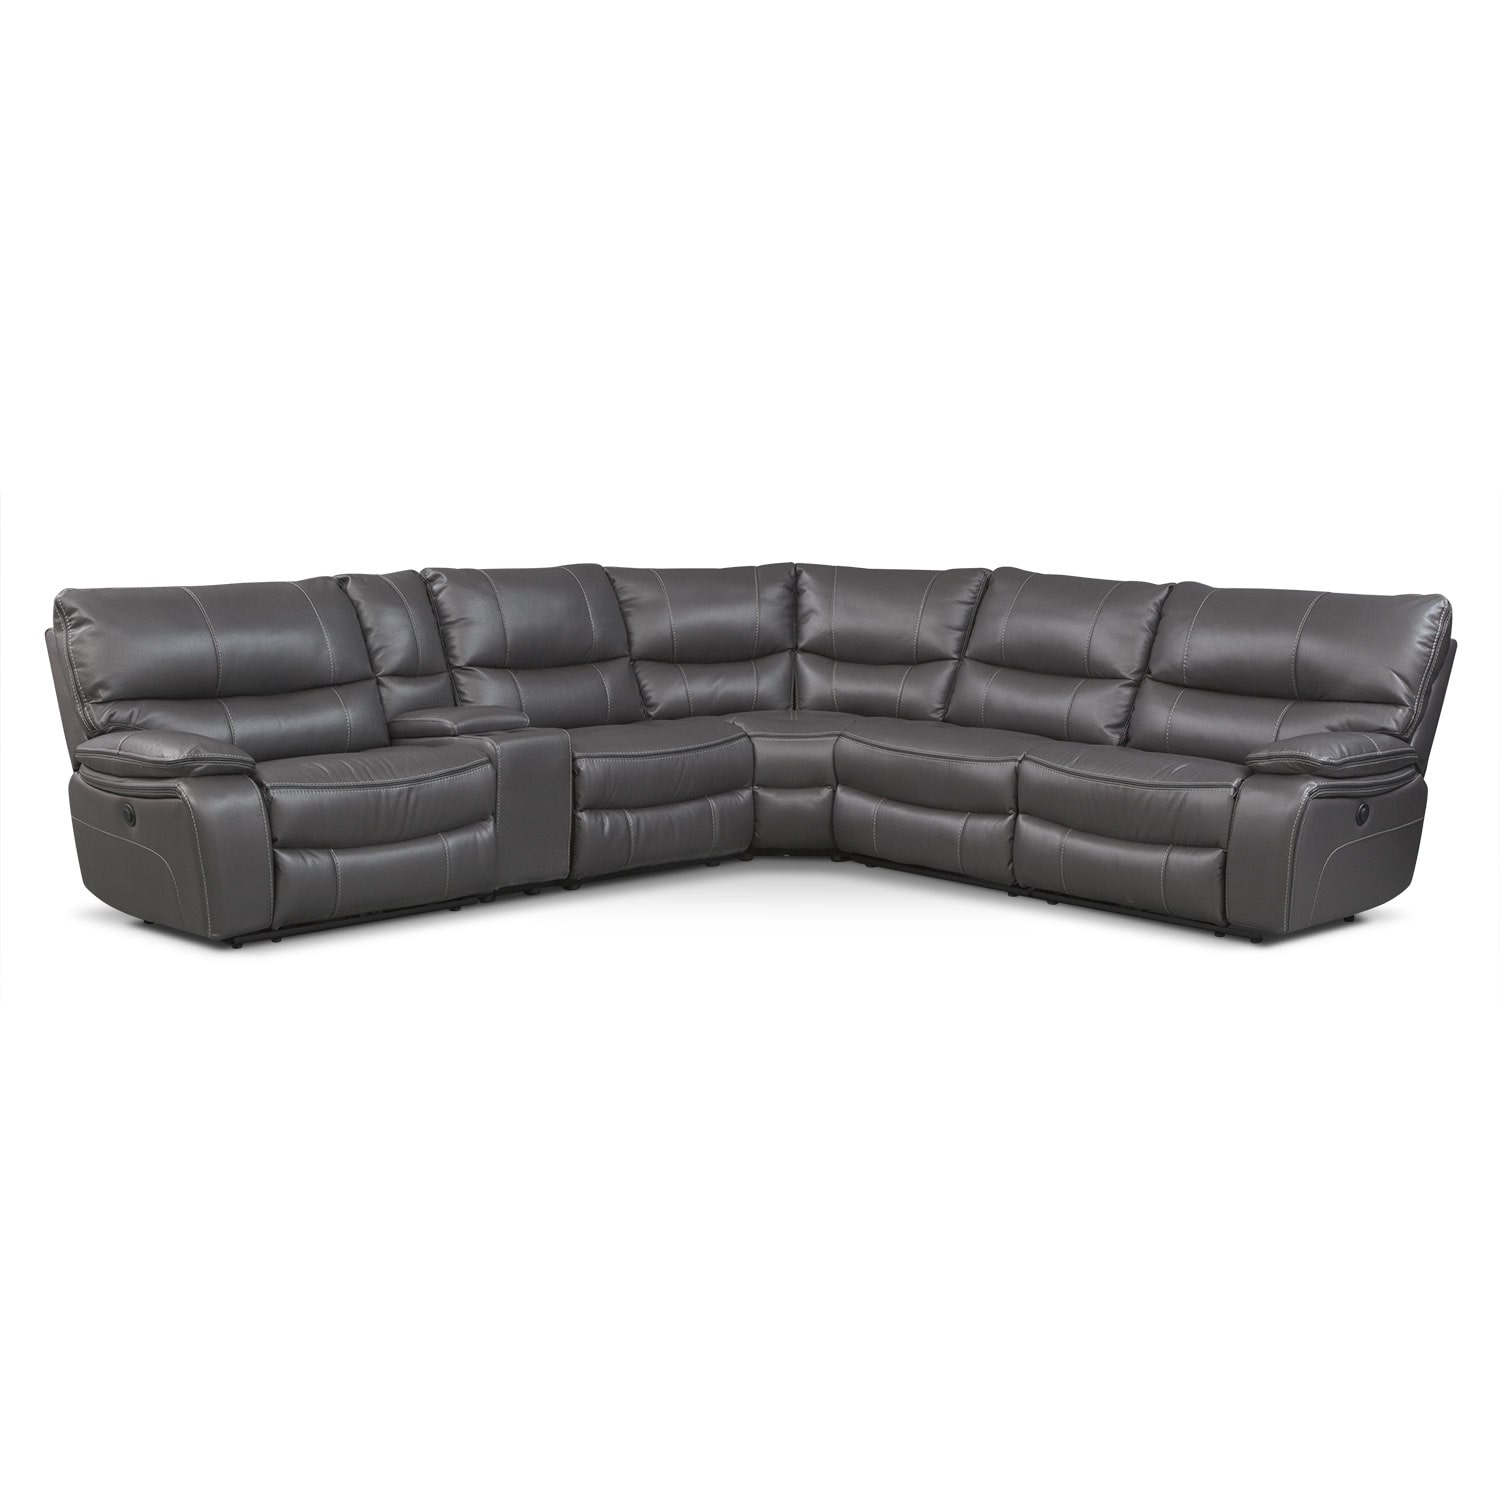 Stylish Designer All Leather Sectional Pasadena Texas J&M-Furniture ...